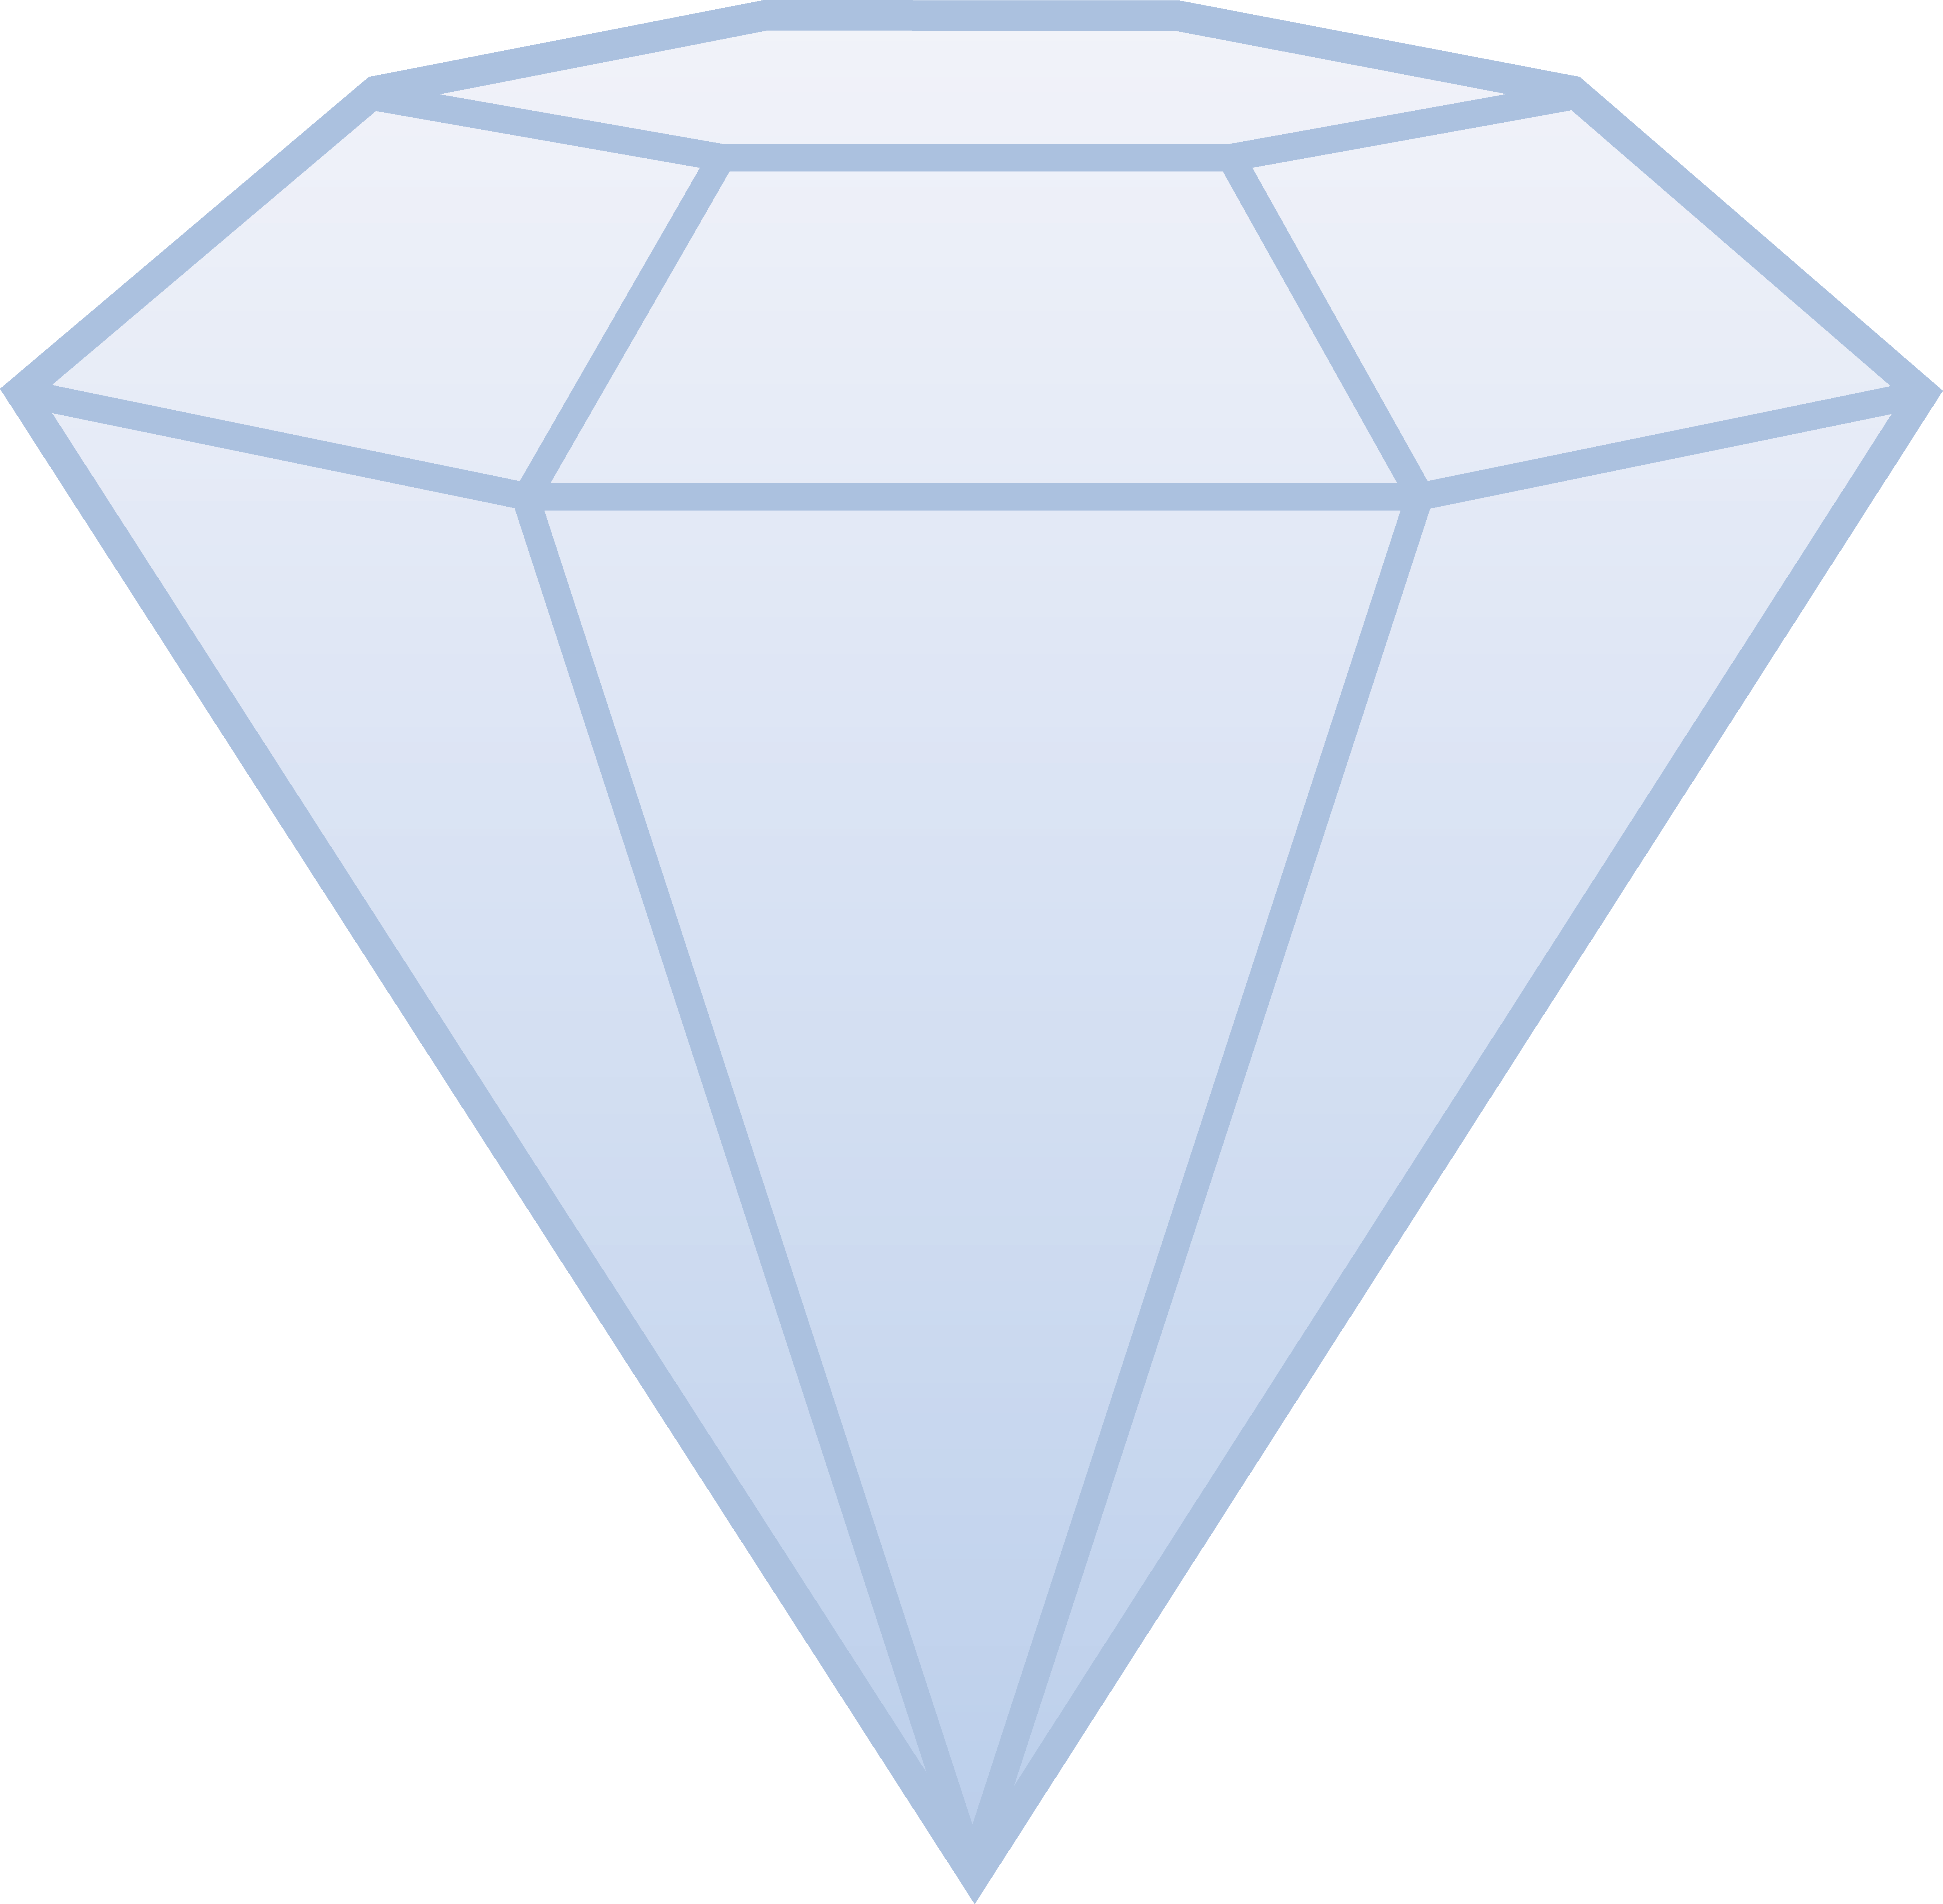 Crystal clipart mineral resource. Diamond design free clip